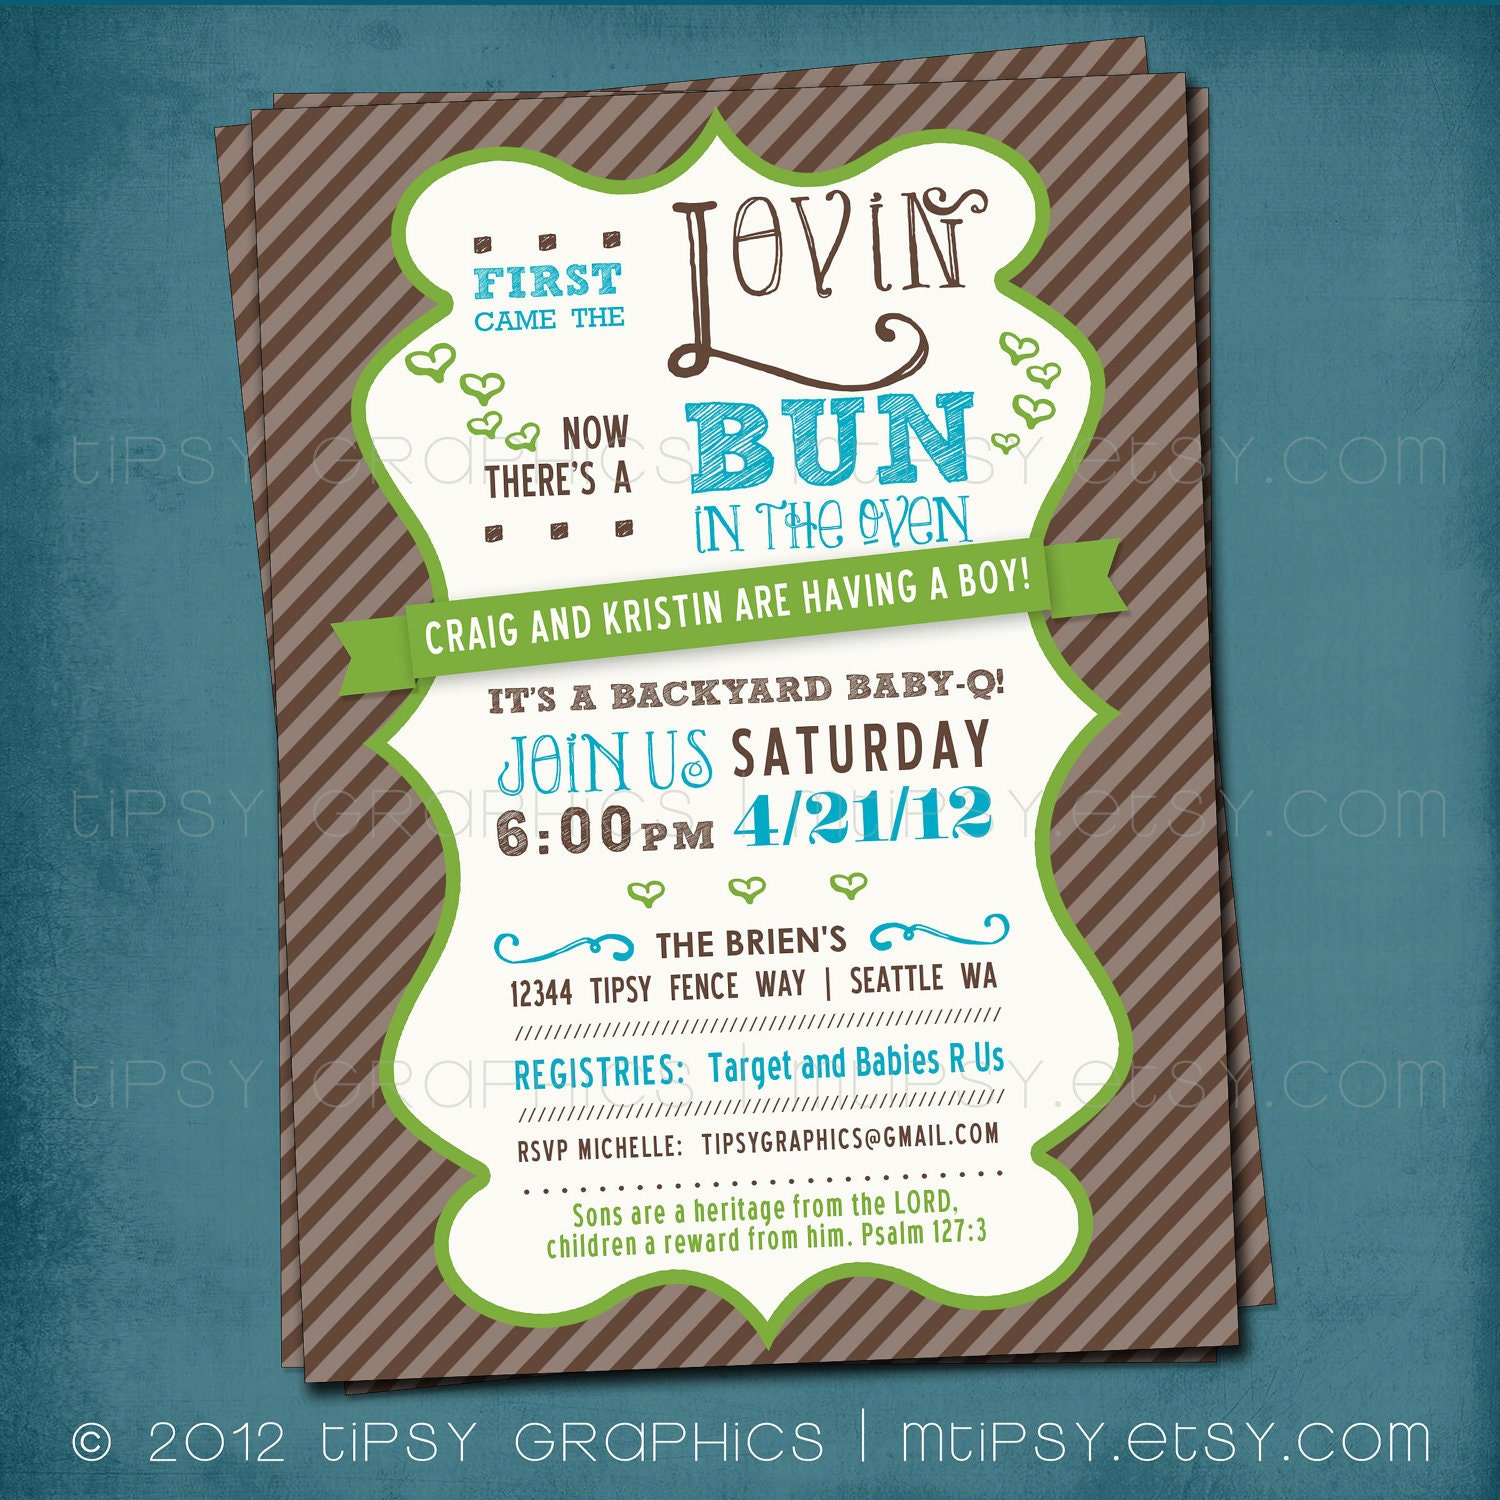 First Came The Lovin. Bun In The Oven Baby Shower Invite By